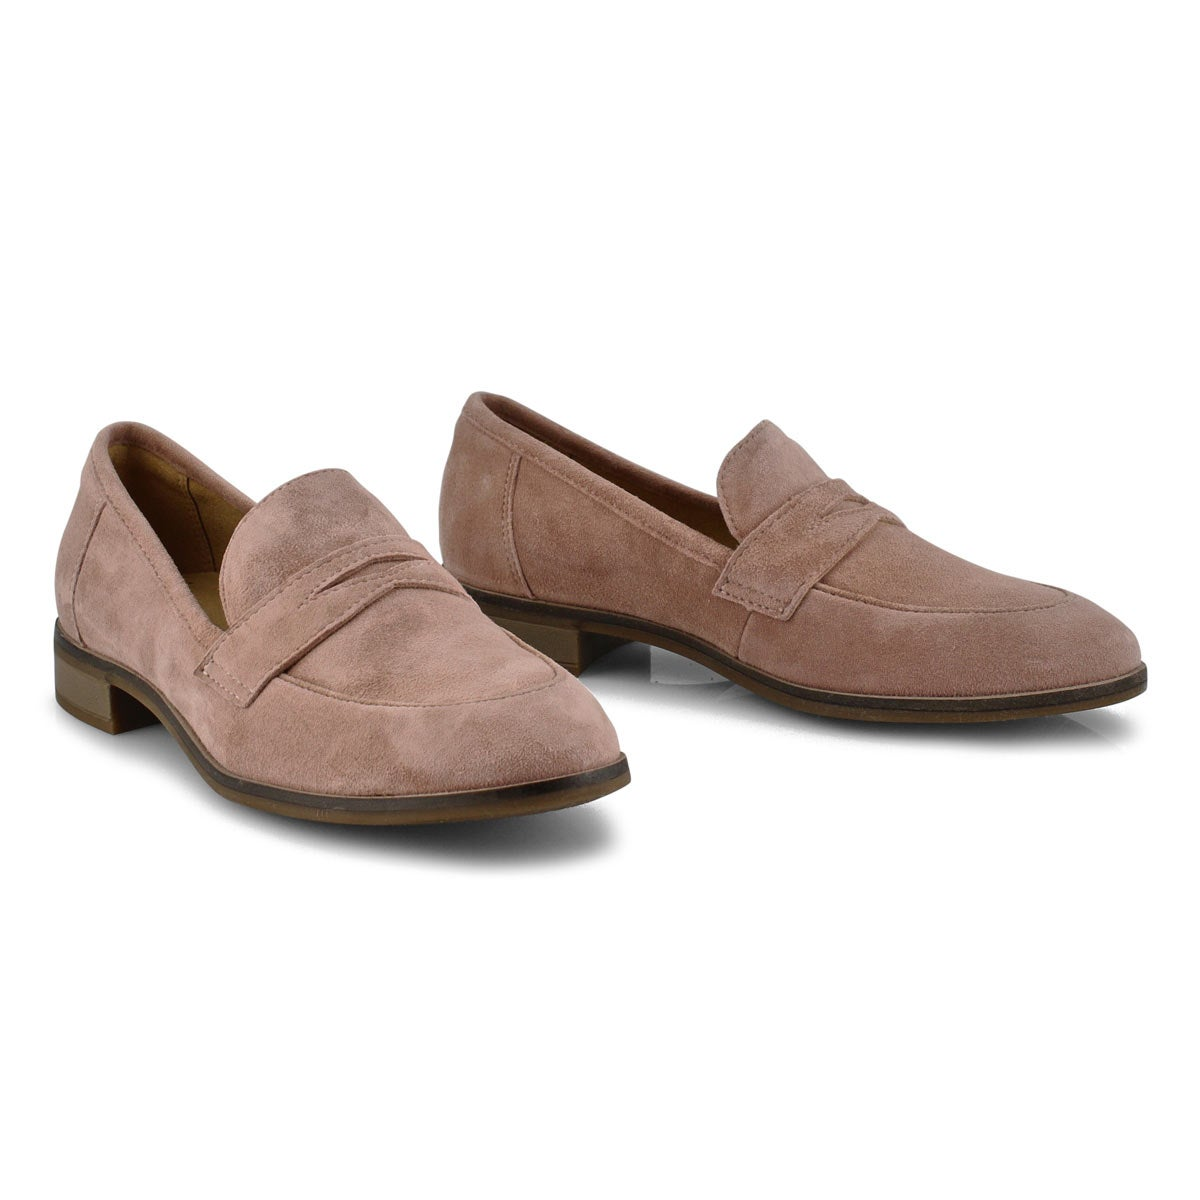 Women's Trish Rose Dress Loafer - Rose